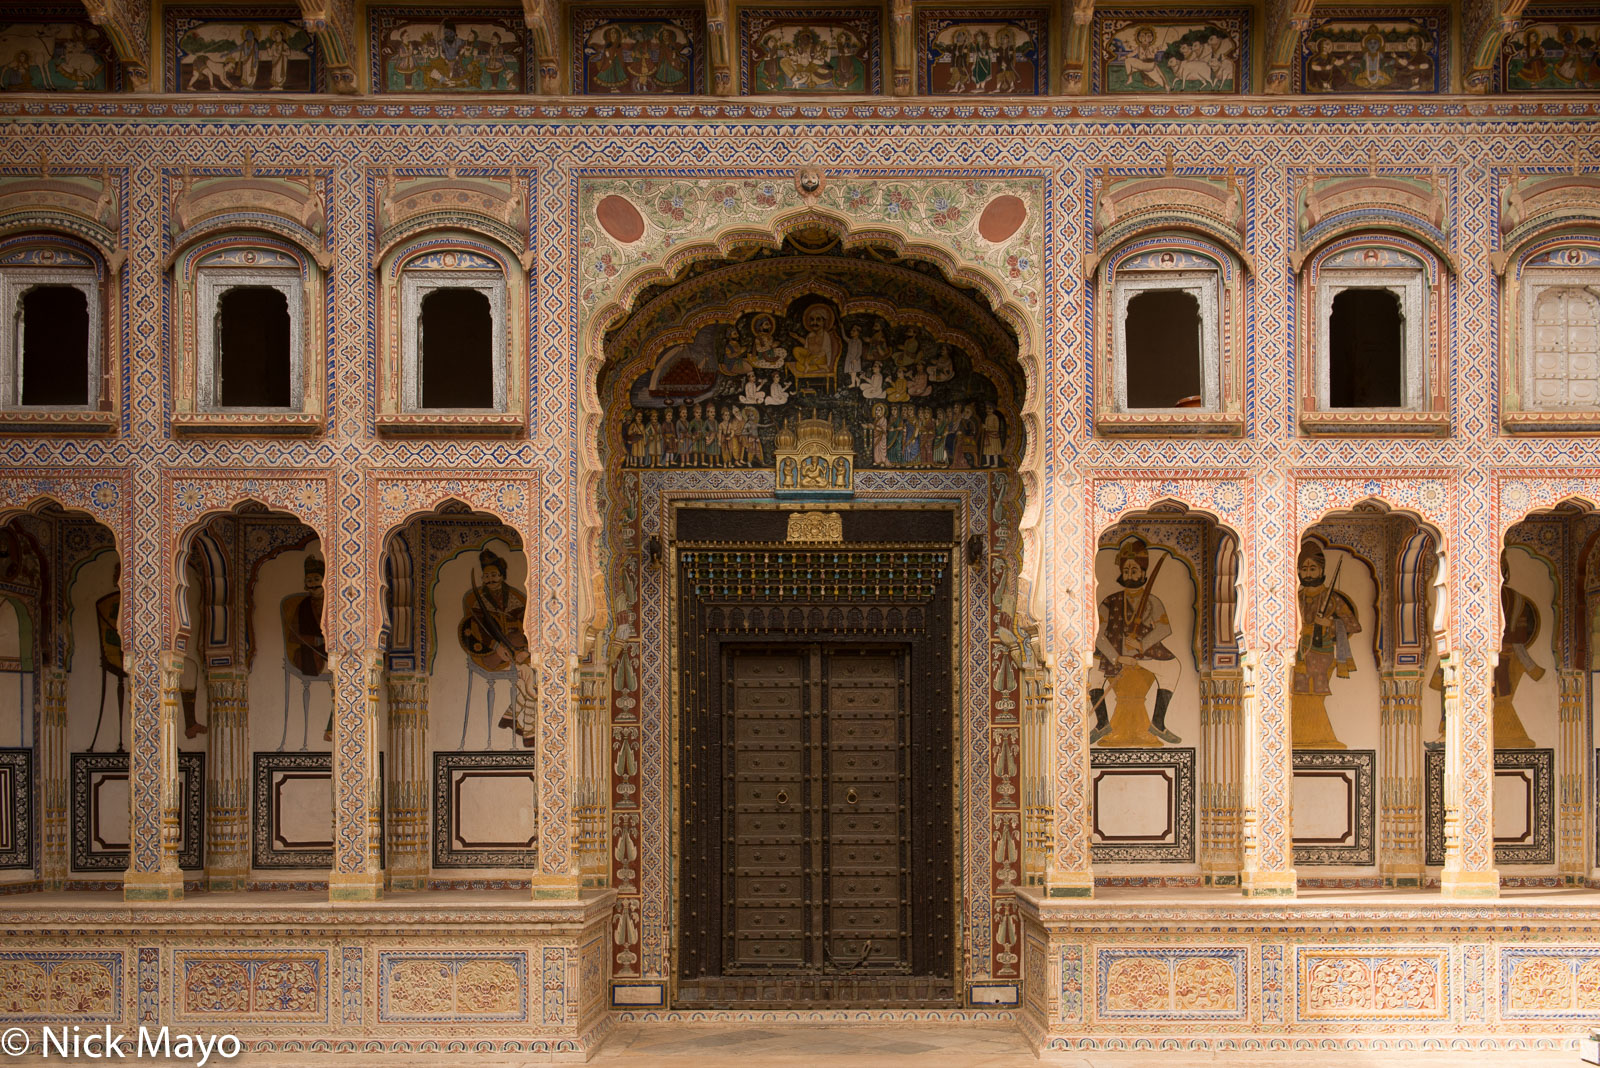 Doorway, India, Mural, Rajasthan, photo